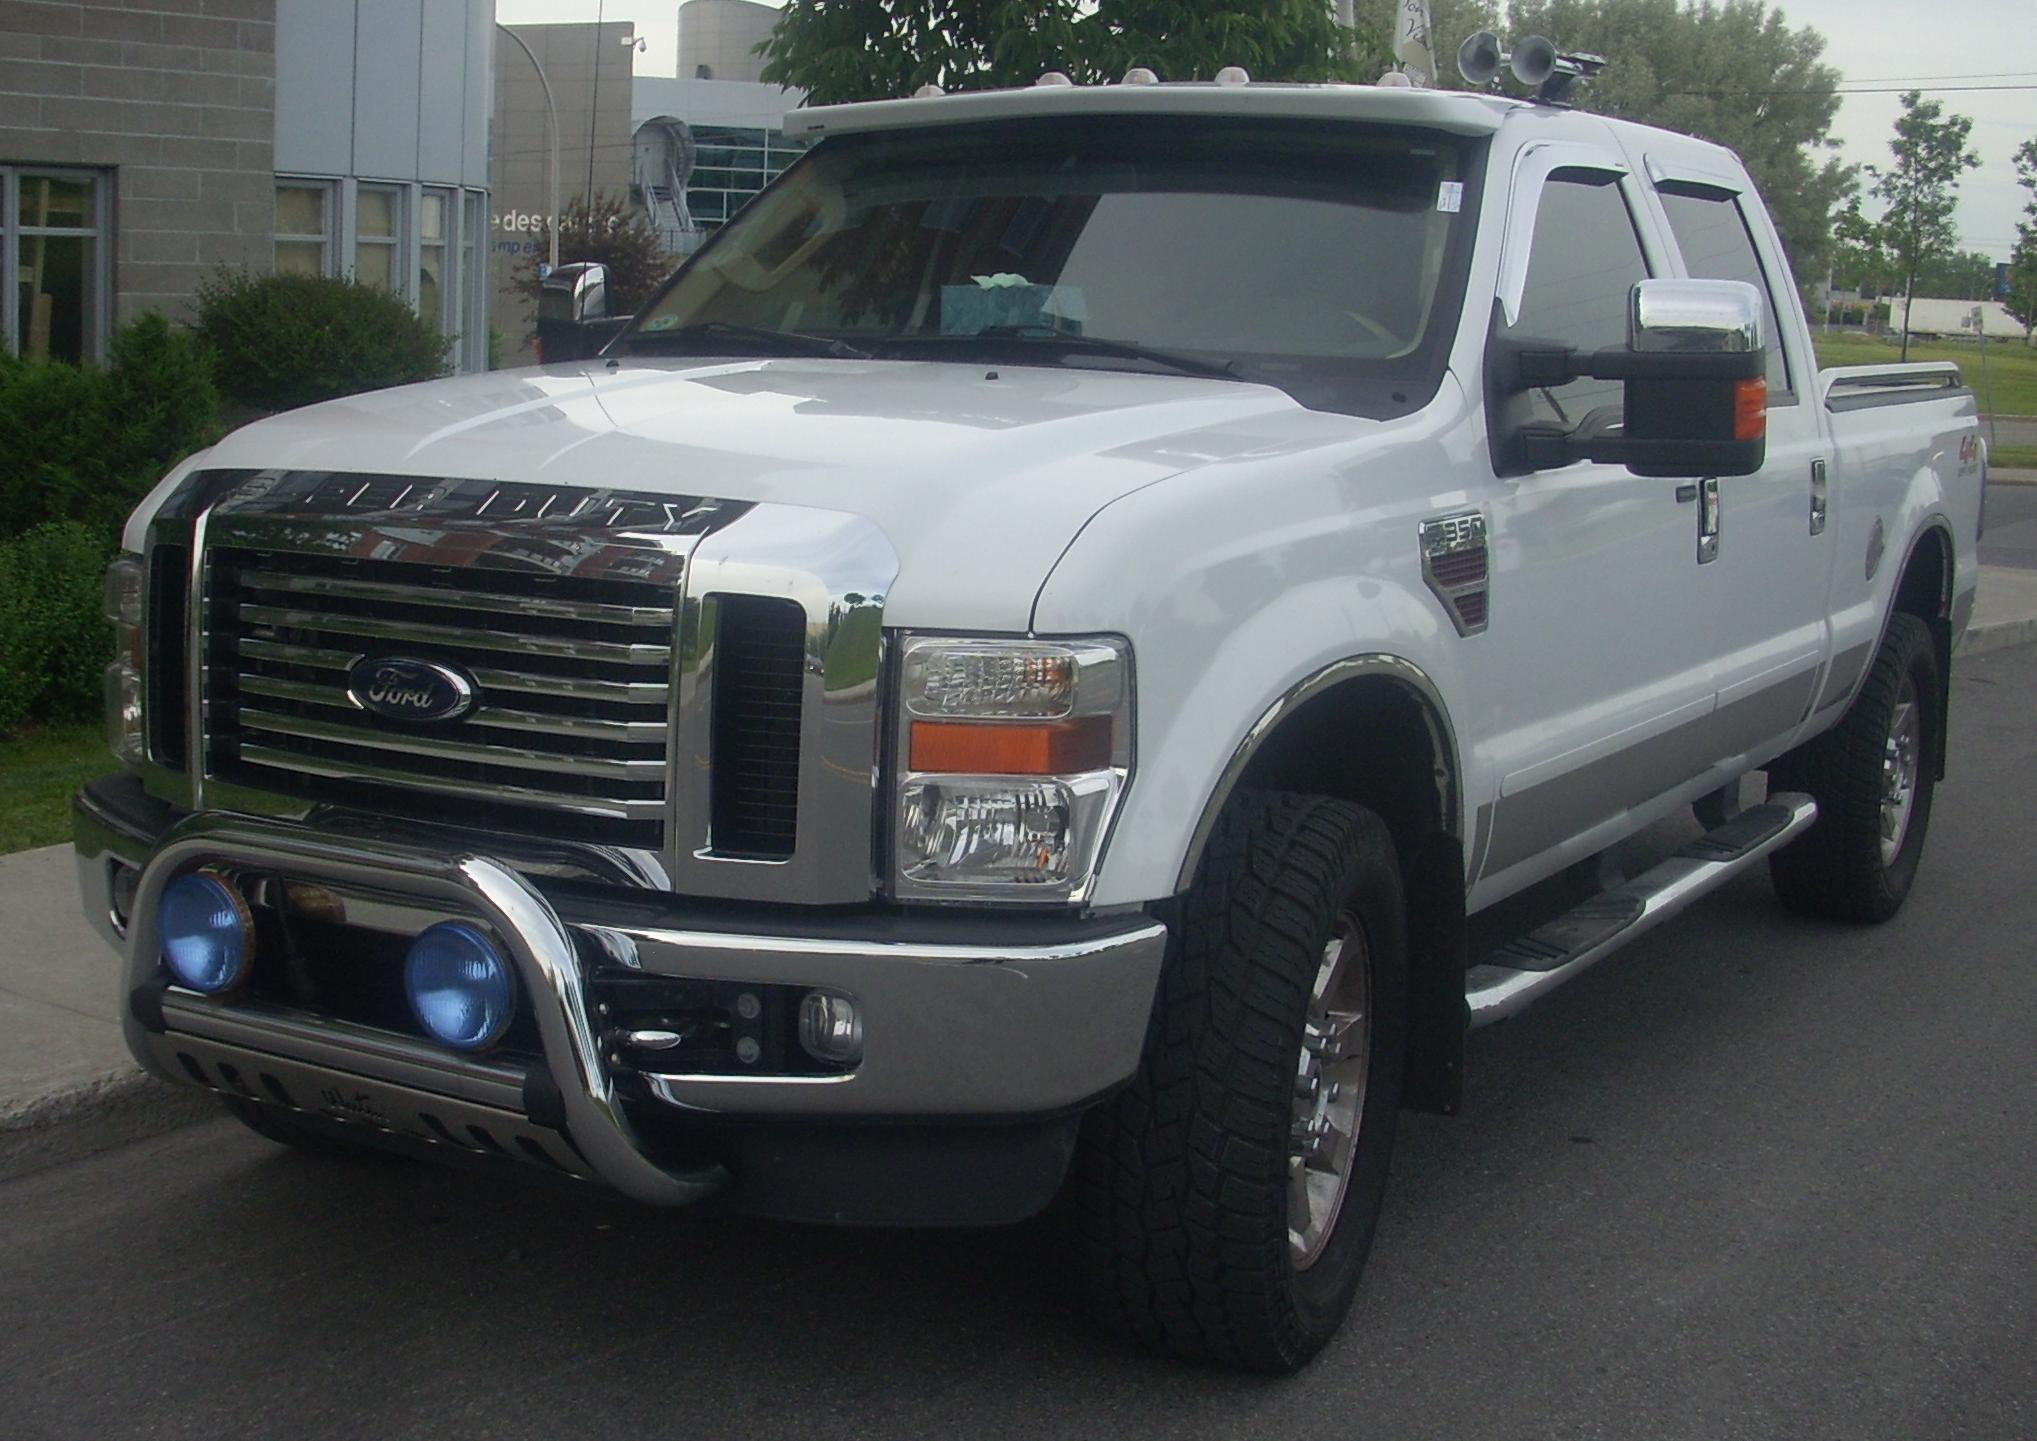 2008 Ford F-350 Super Duty #12